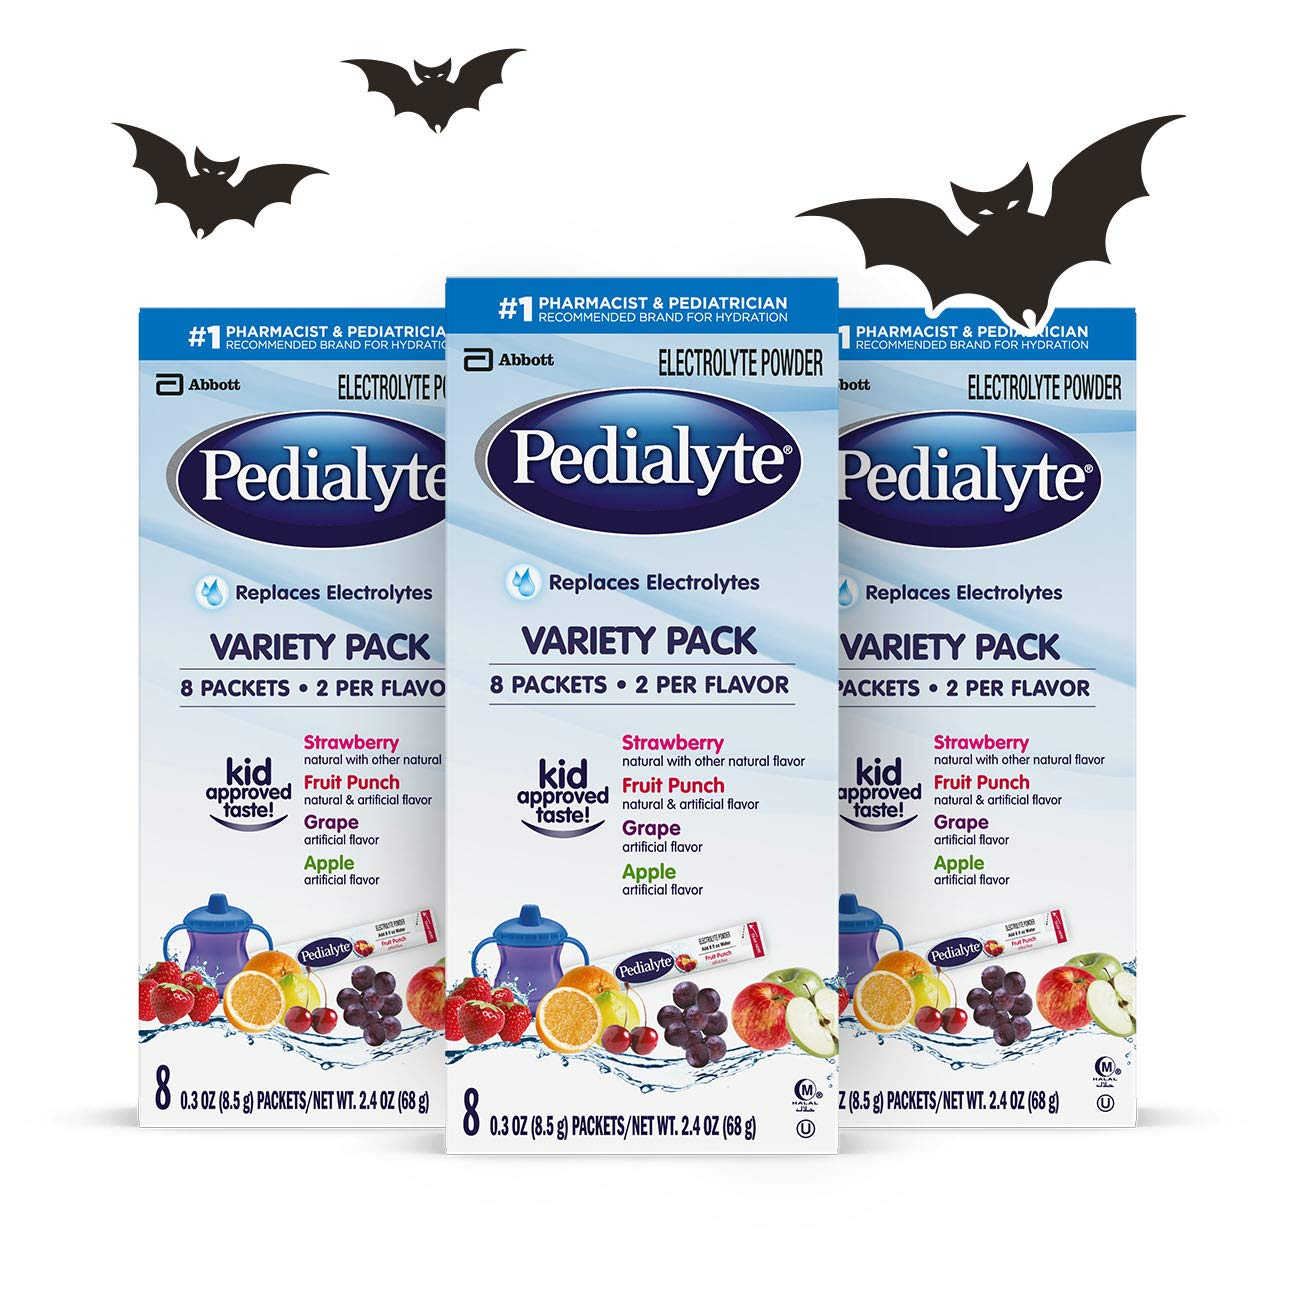 Pedialyte Electrolyte Powder, Variety Pack, Electrolyte Hydration Drink, 0.3 oz Powder Packs, 24 Count Abbott Laboratories 070074663630